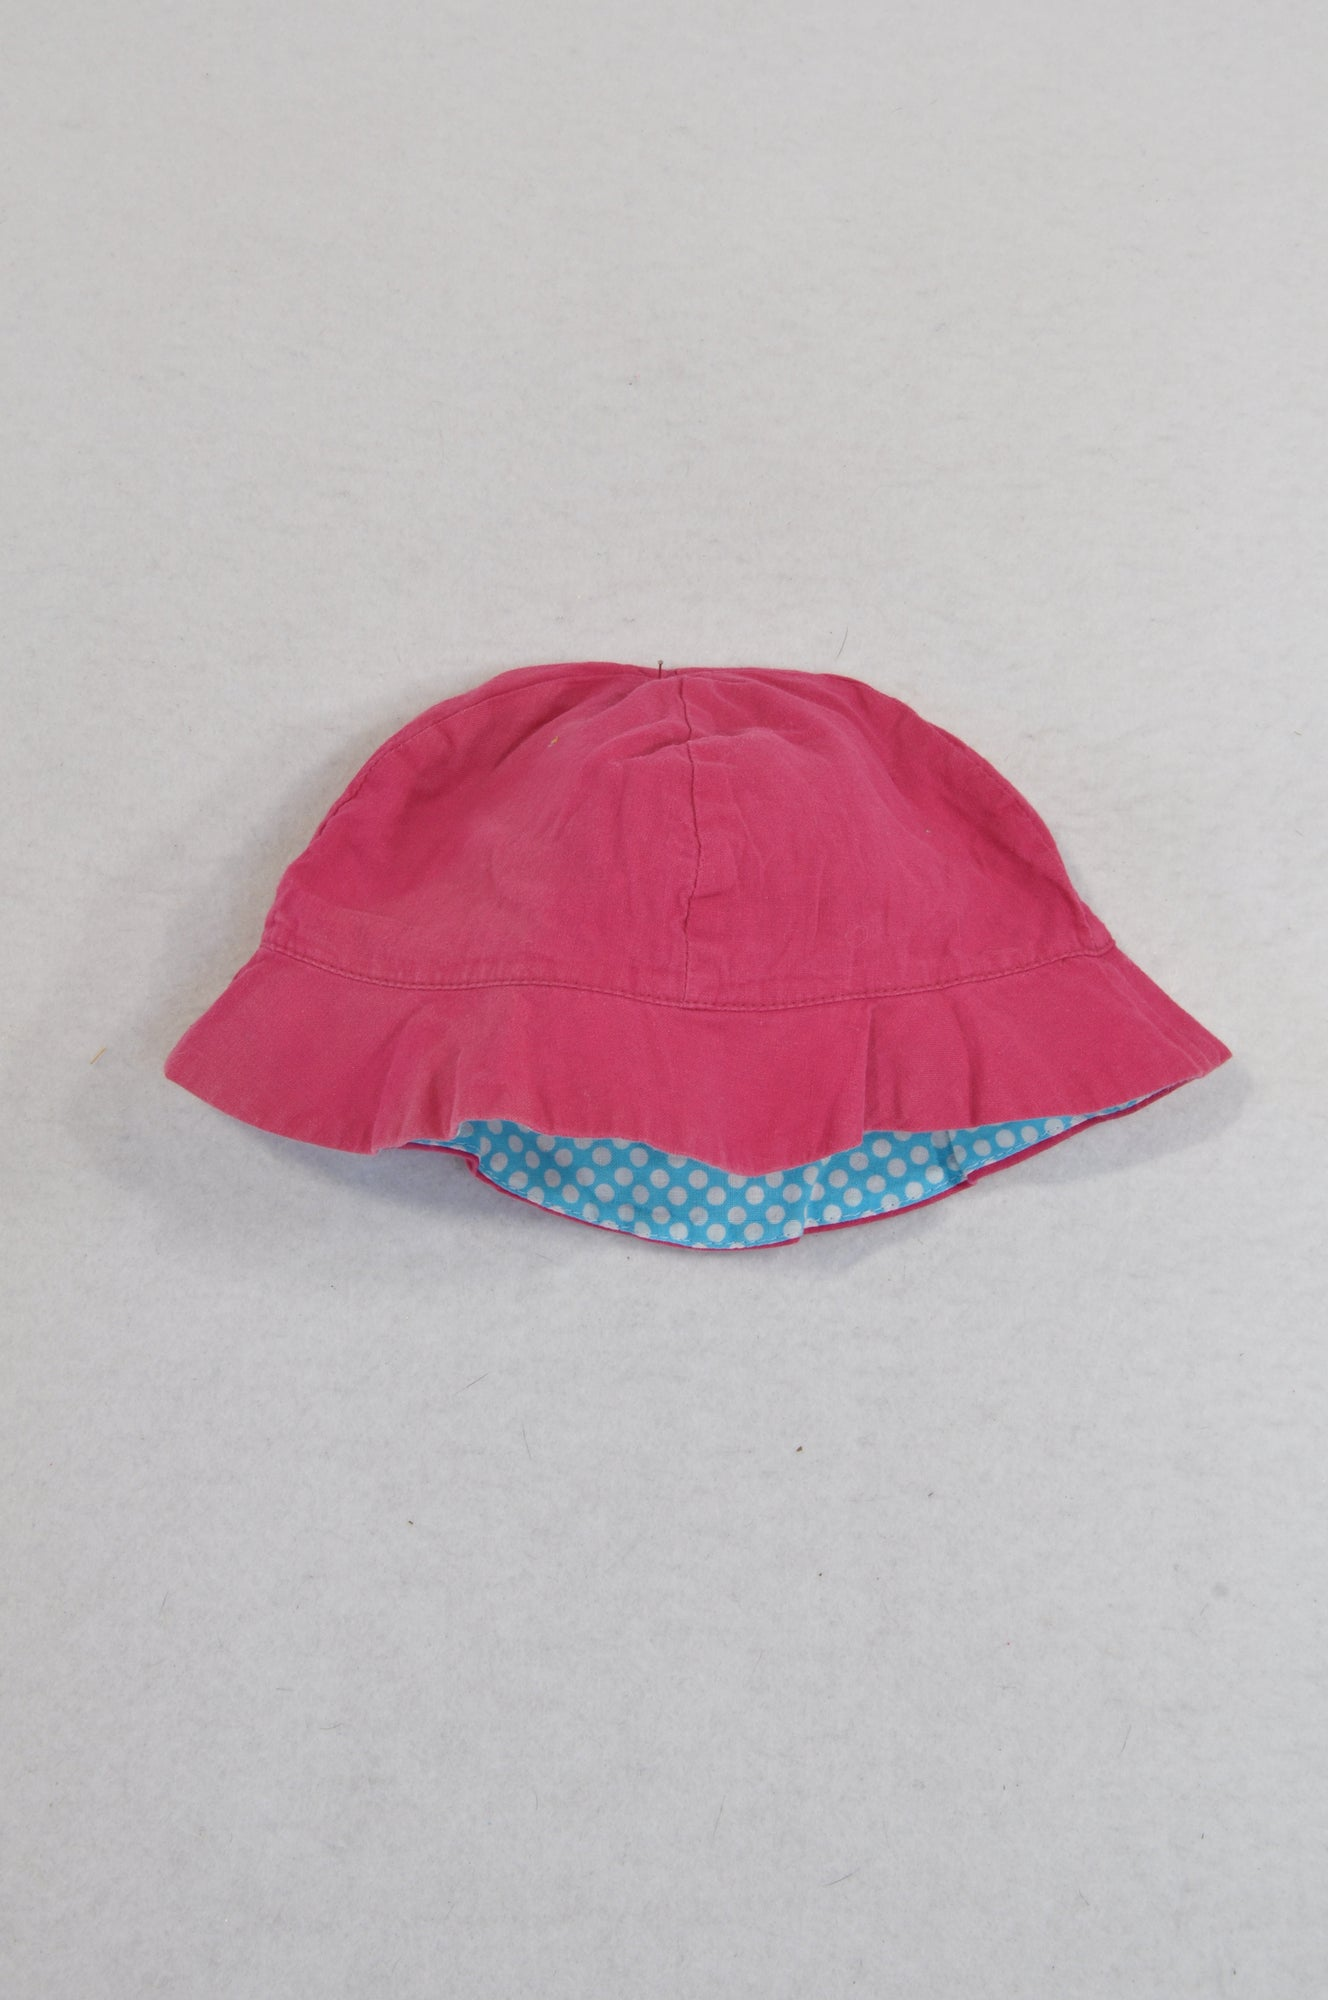 Unbranded Cerise Reversible Blue Dotty Hat Girls 3-6 months